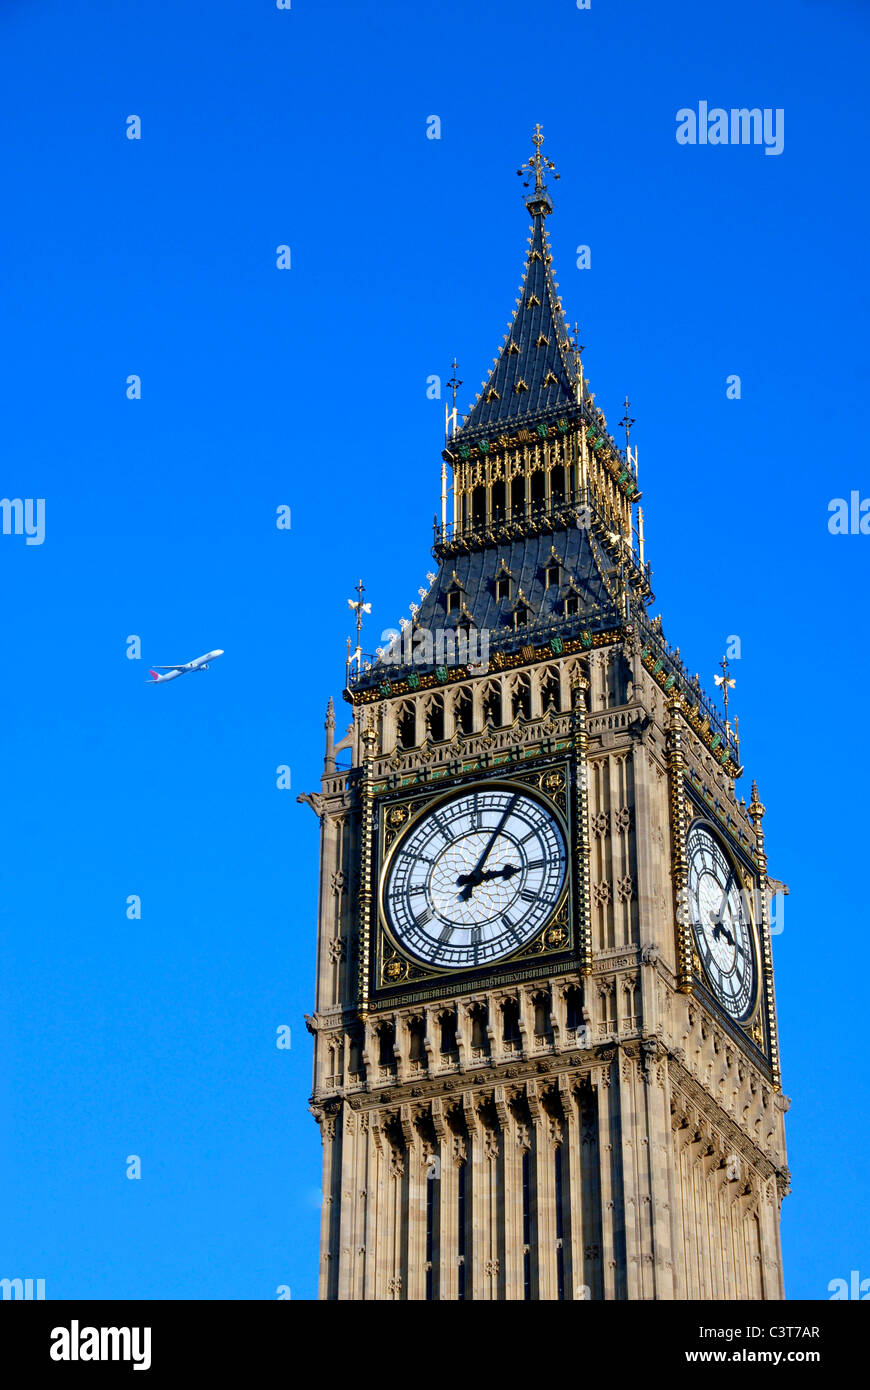 View of Big Ben clock tower at the Houses of Parliament with jet airliner passing , London, UK - Stock Image